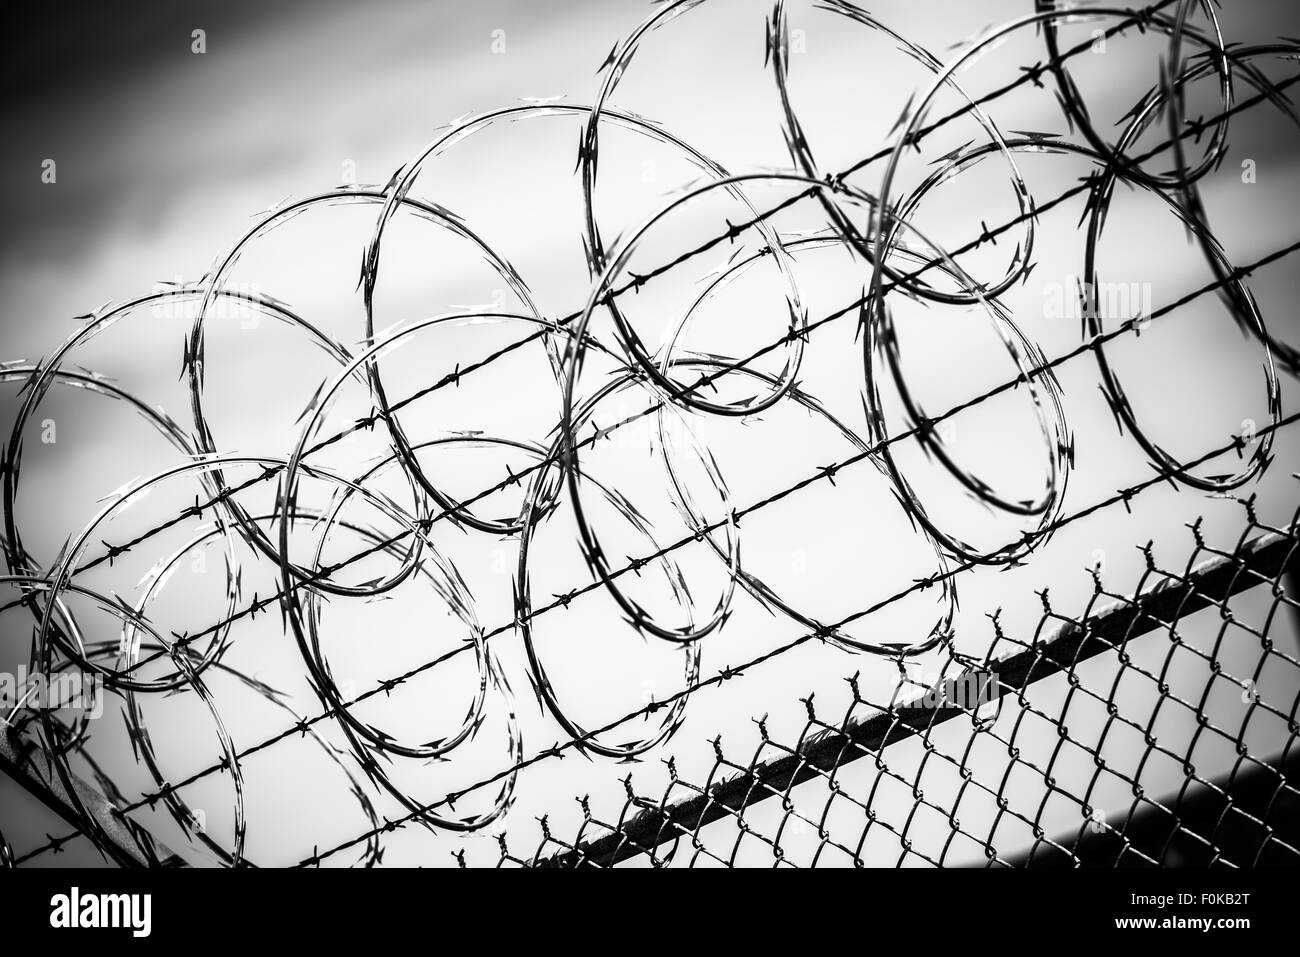 Barbed Wire Fence. Prison Fence in Black and White Closeup. - Stock Image